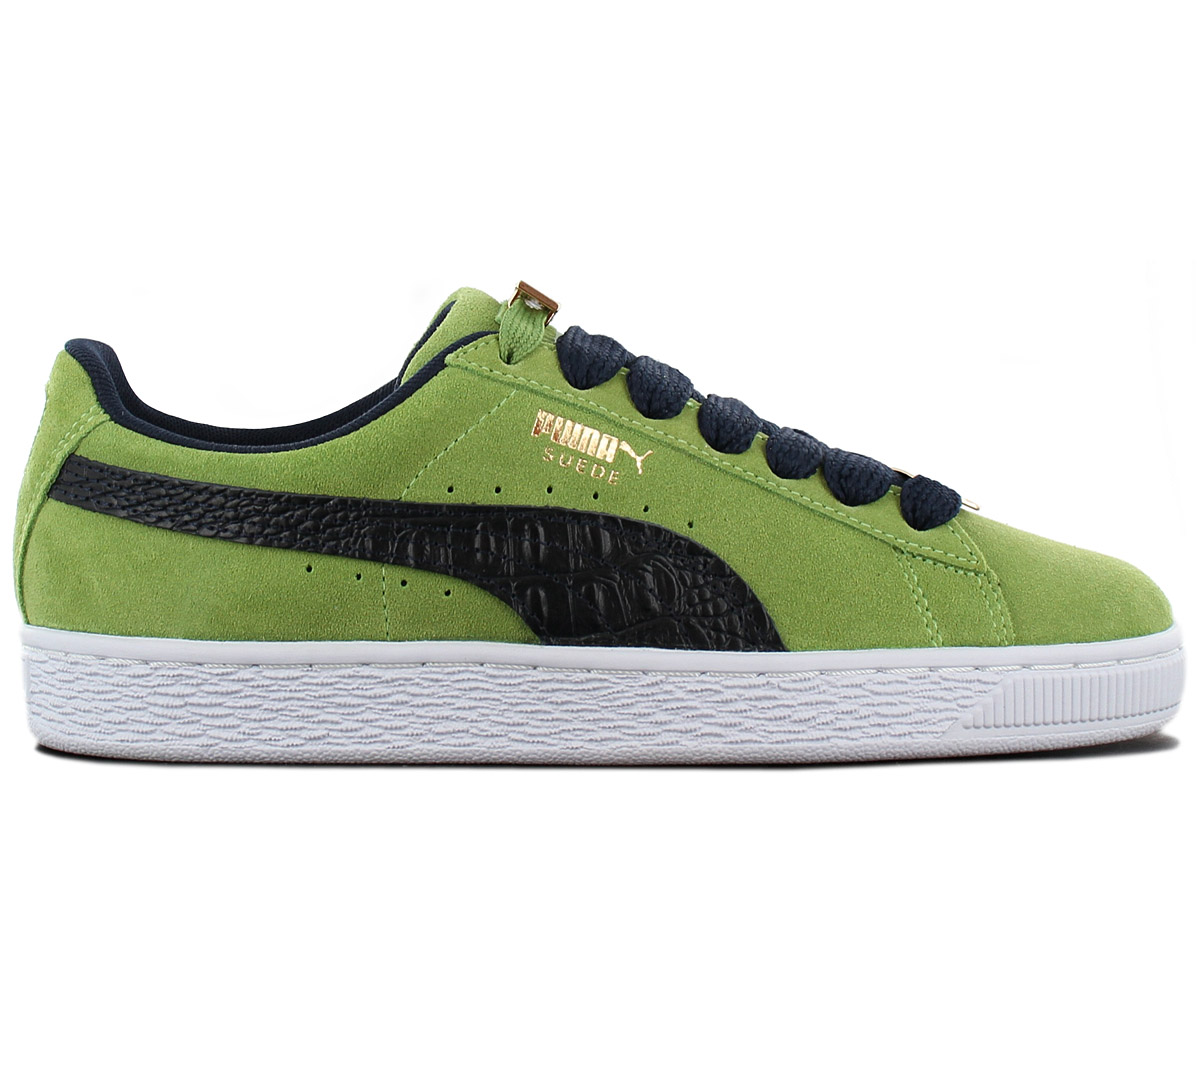 Details about Puma Suede Classic B Boy Fabulous Sneaker Shoes Sneakers 365362 03 Green New